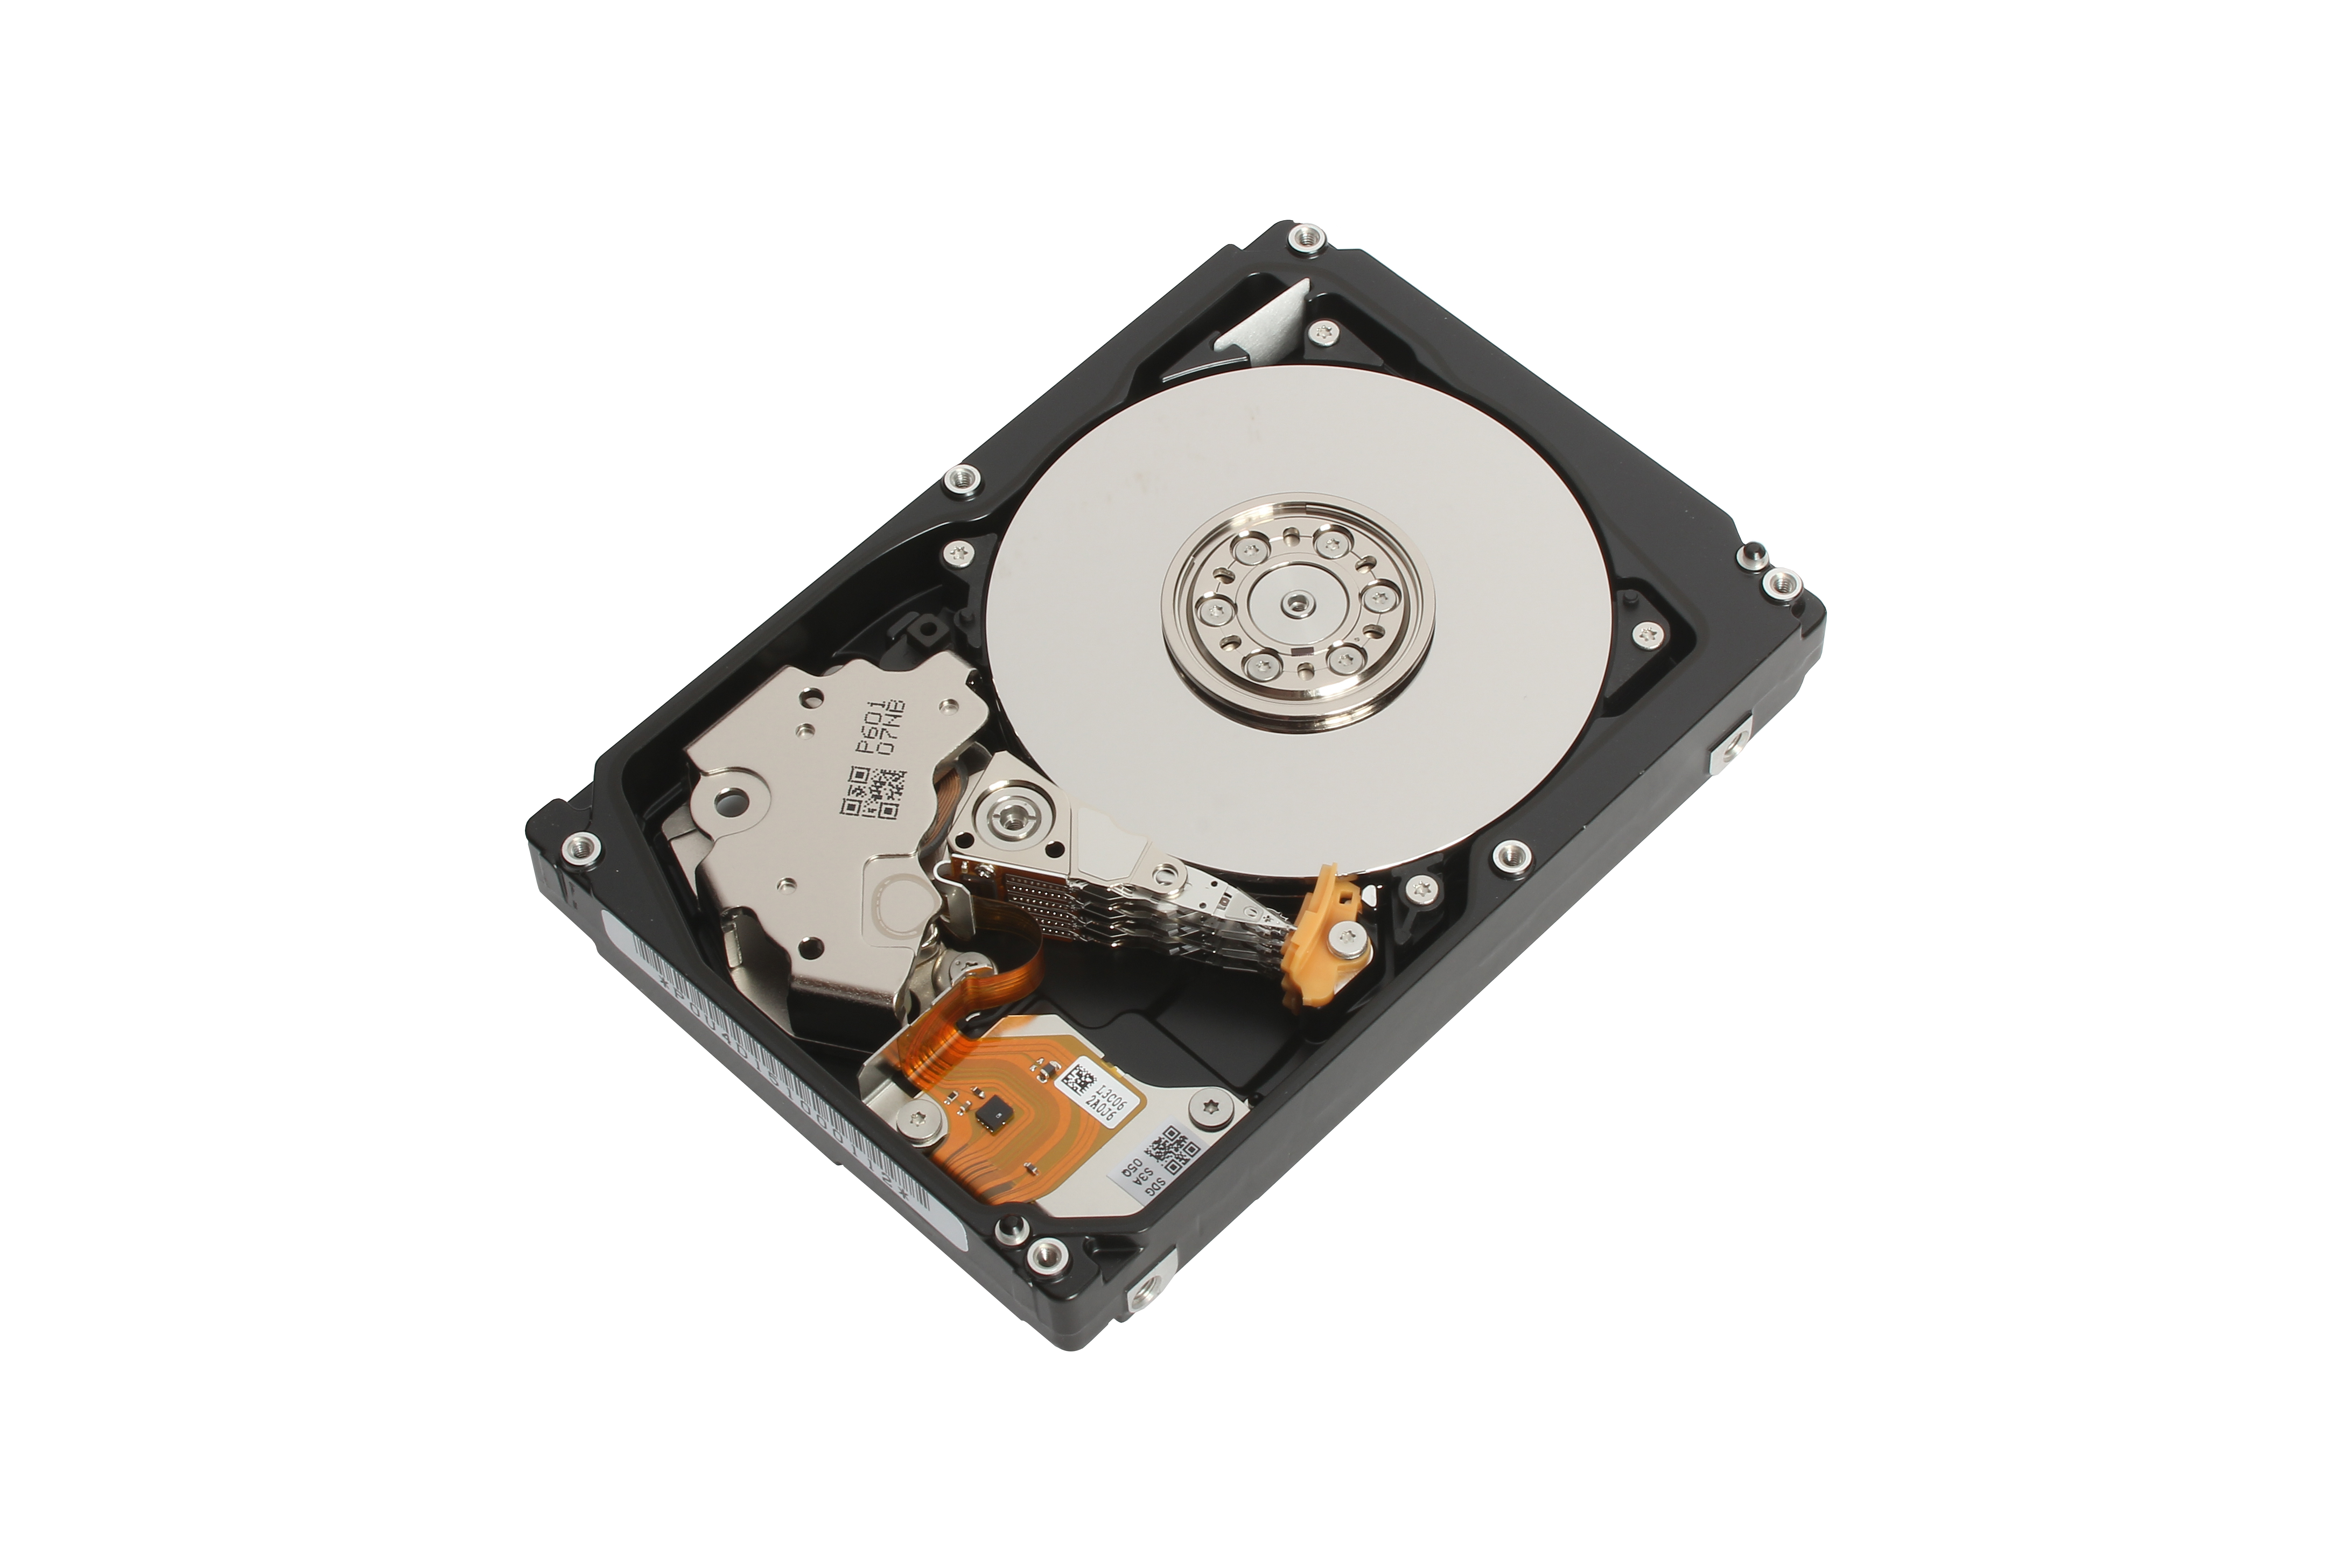 """Toshiba: """"AL14SX Series,"""" new additions to its line-up of enterprise performance hard disk drives (HDD) for mission critical server and storage applications. (Photo: Business Wire)"""